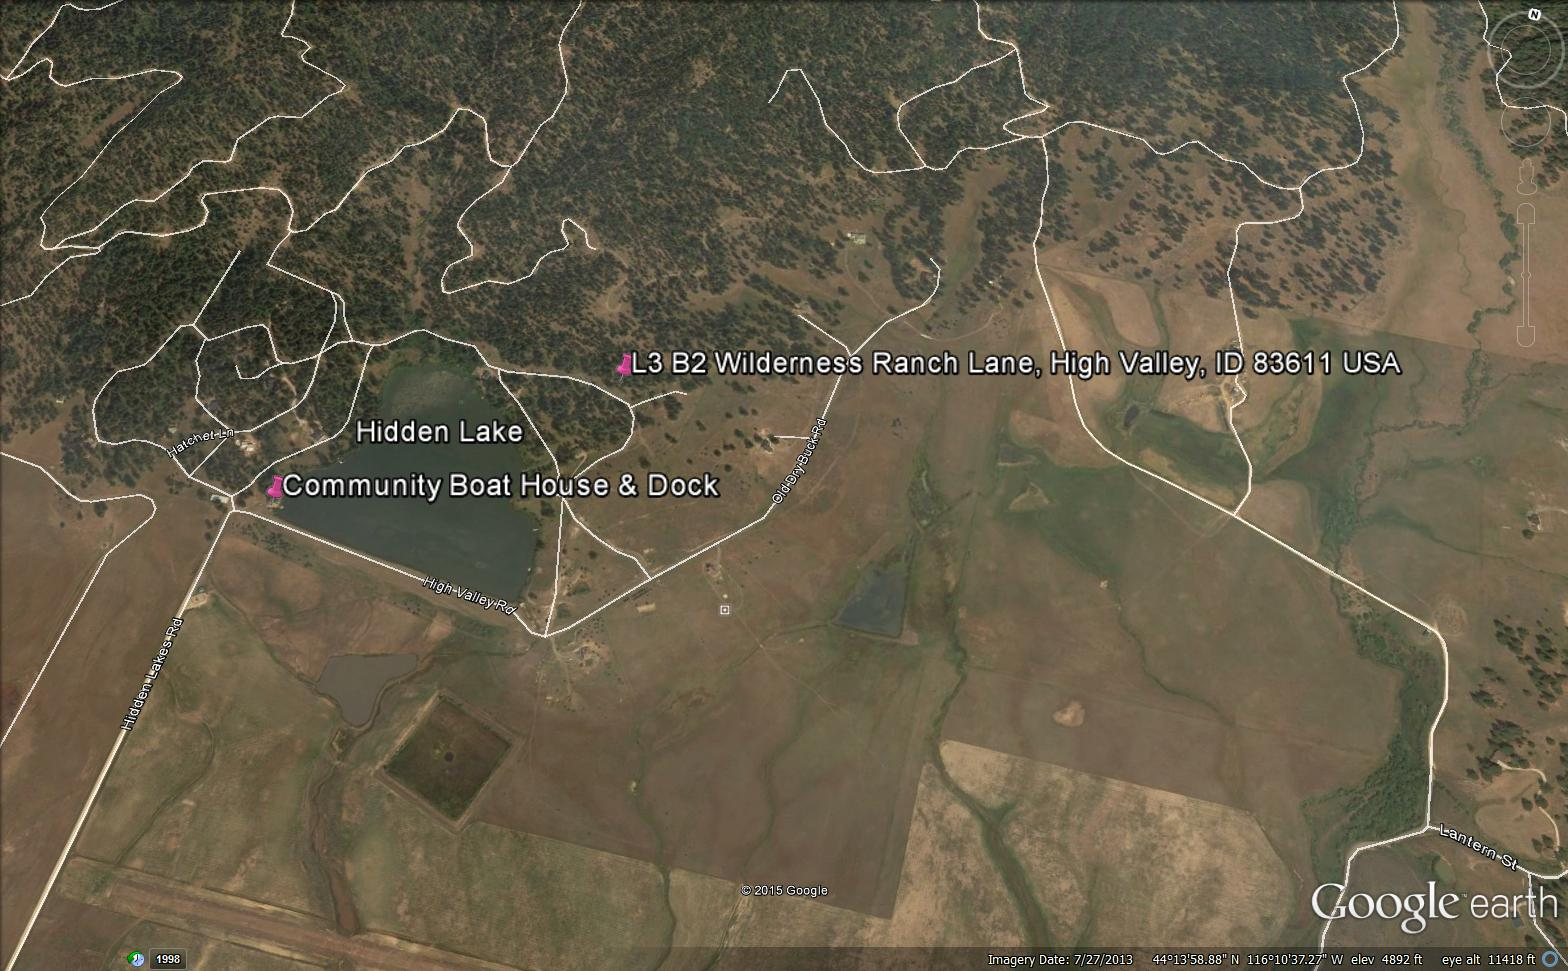 Cascade Lake Realty Bare Land 30K To 499K - View House Prices On Map In Us